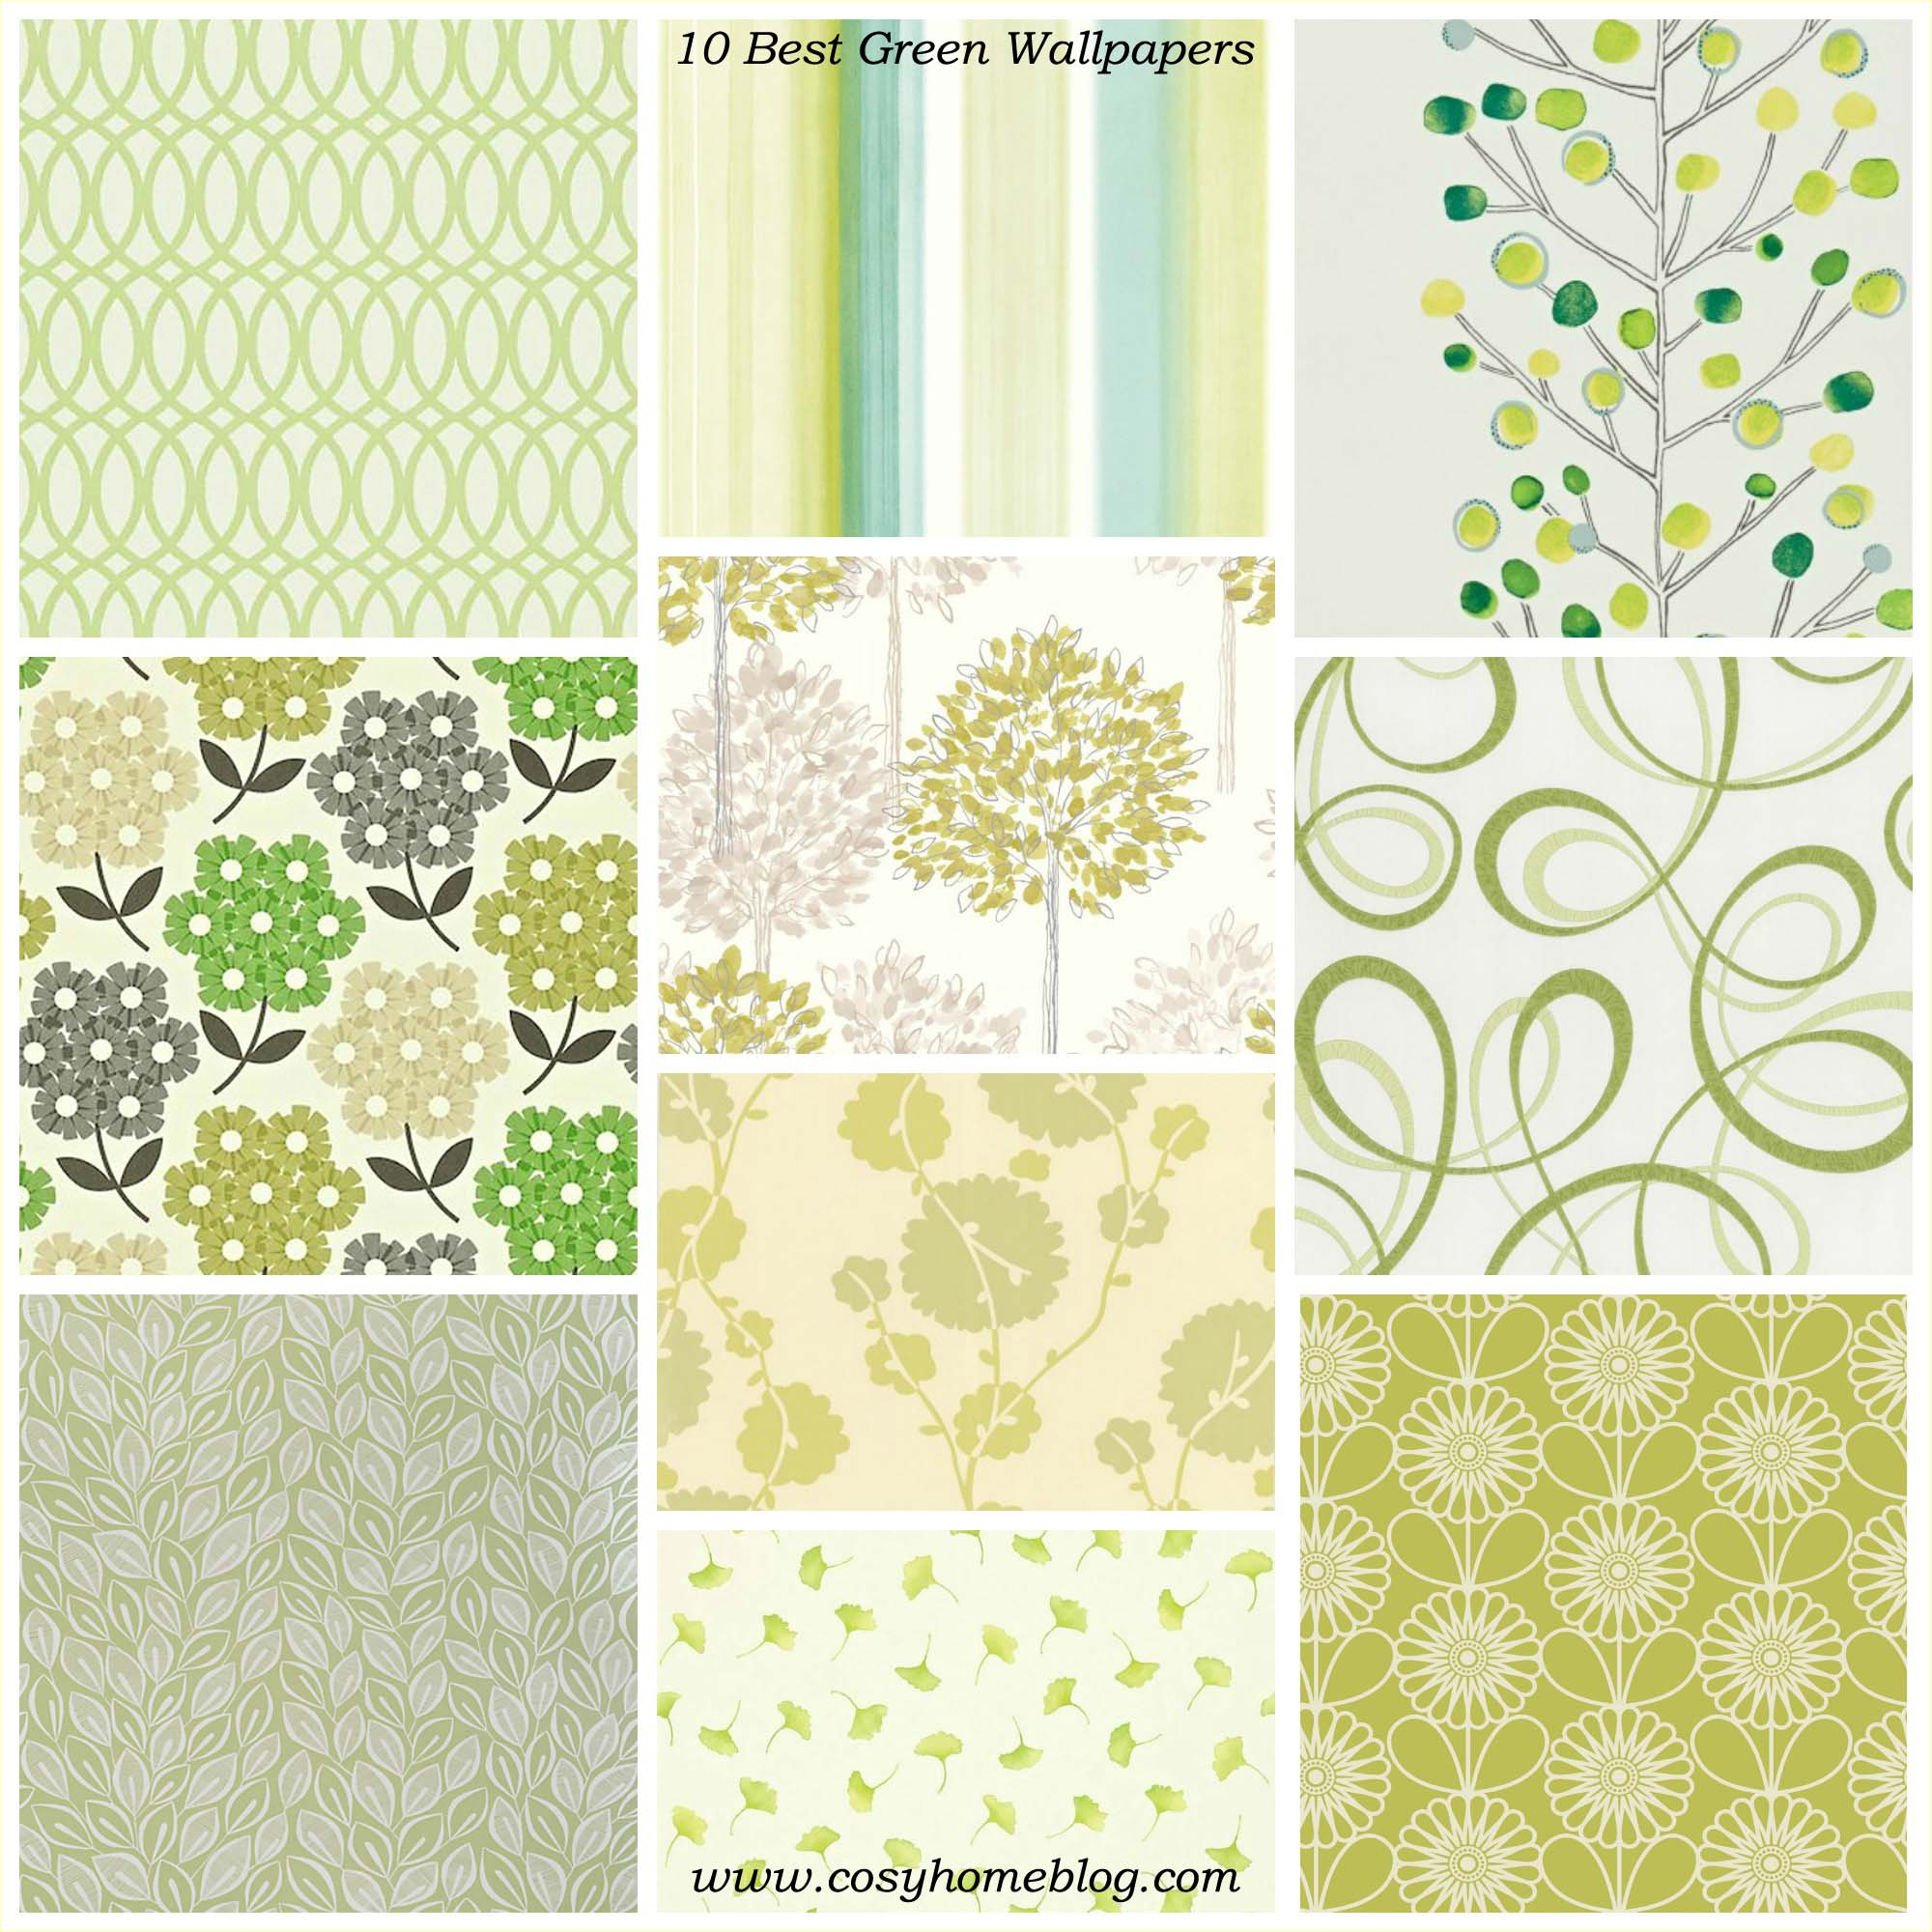 Spring greens 10 green wallpaper decorating ideas cosy home blog Wallpaper home design ideas